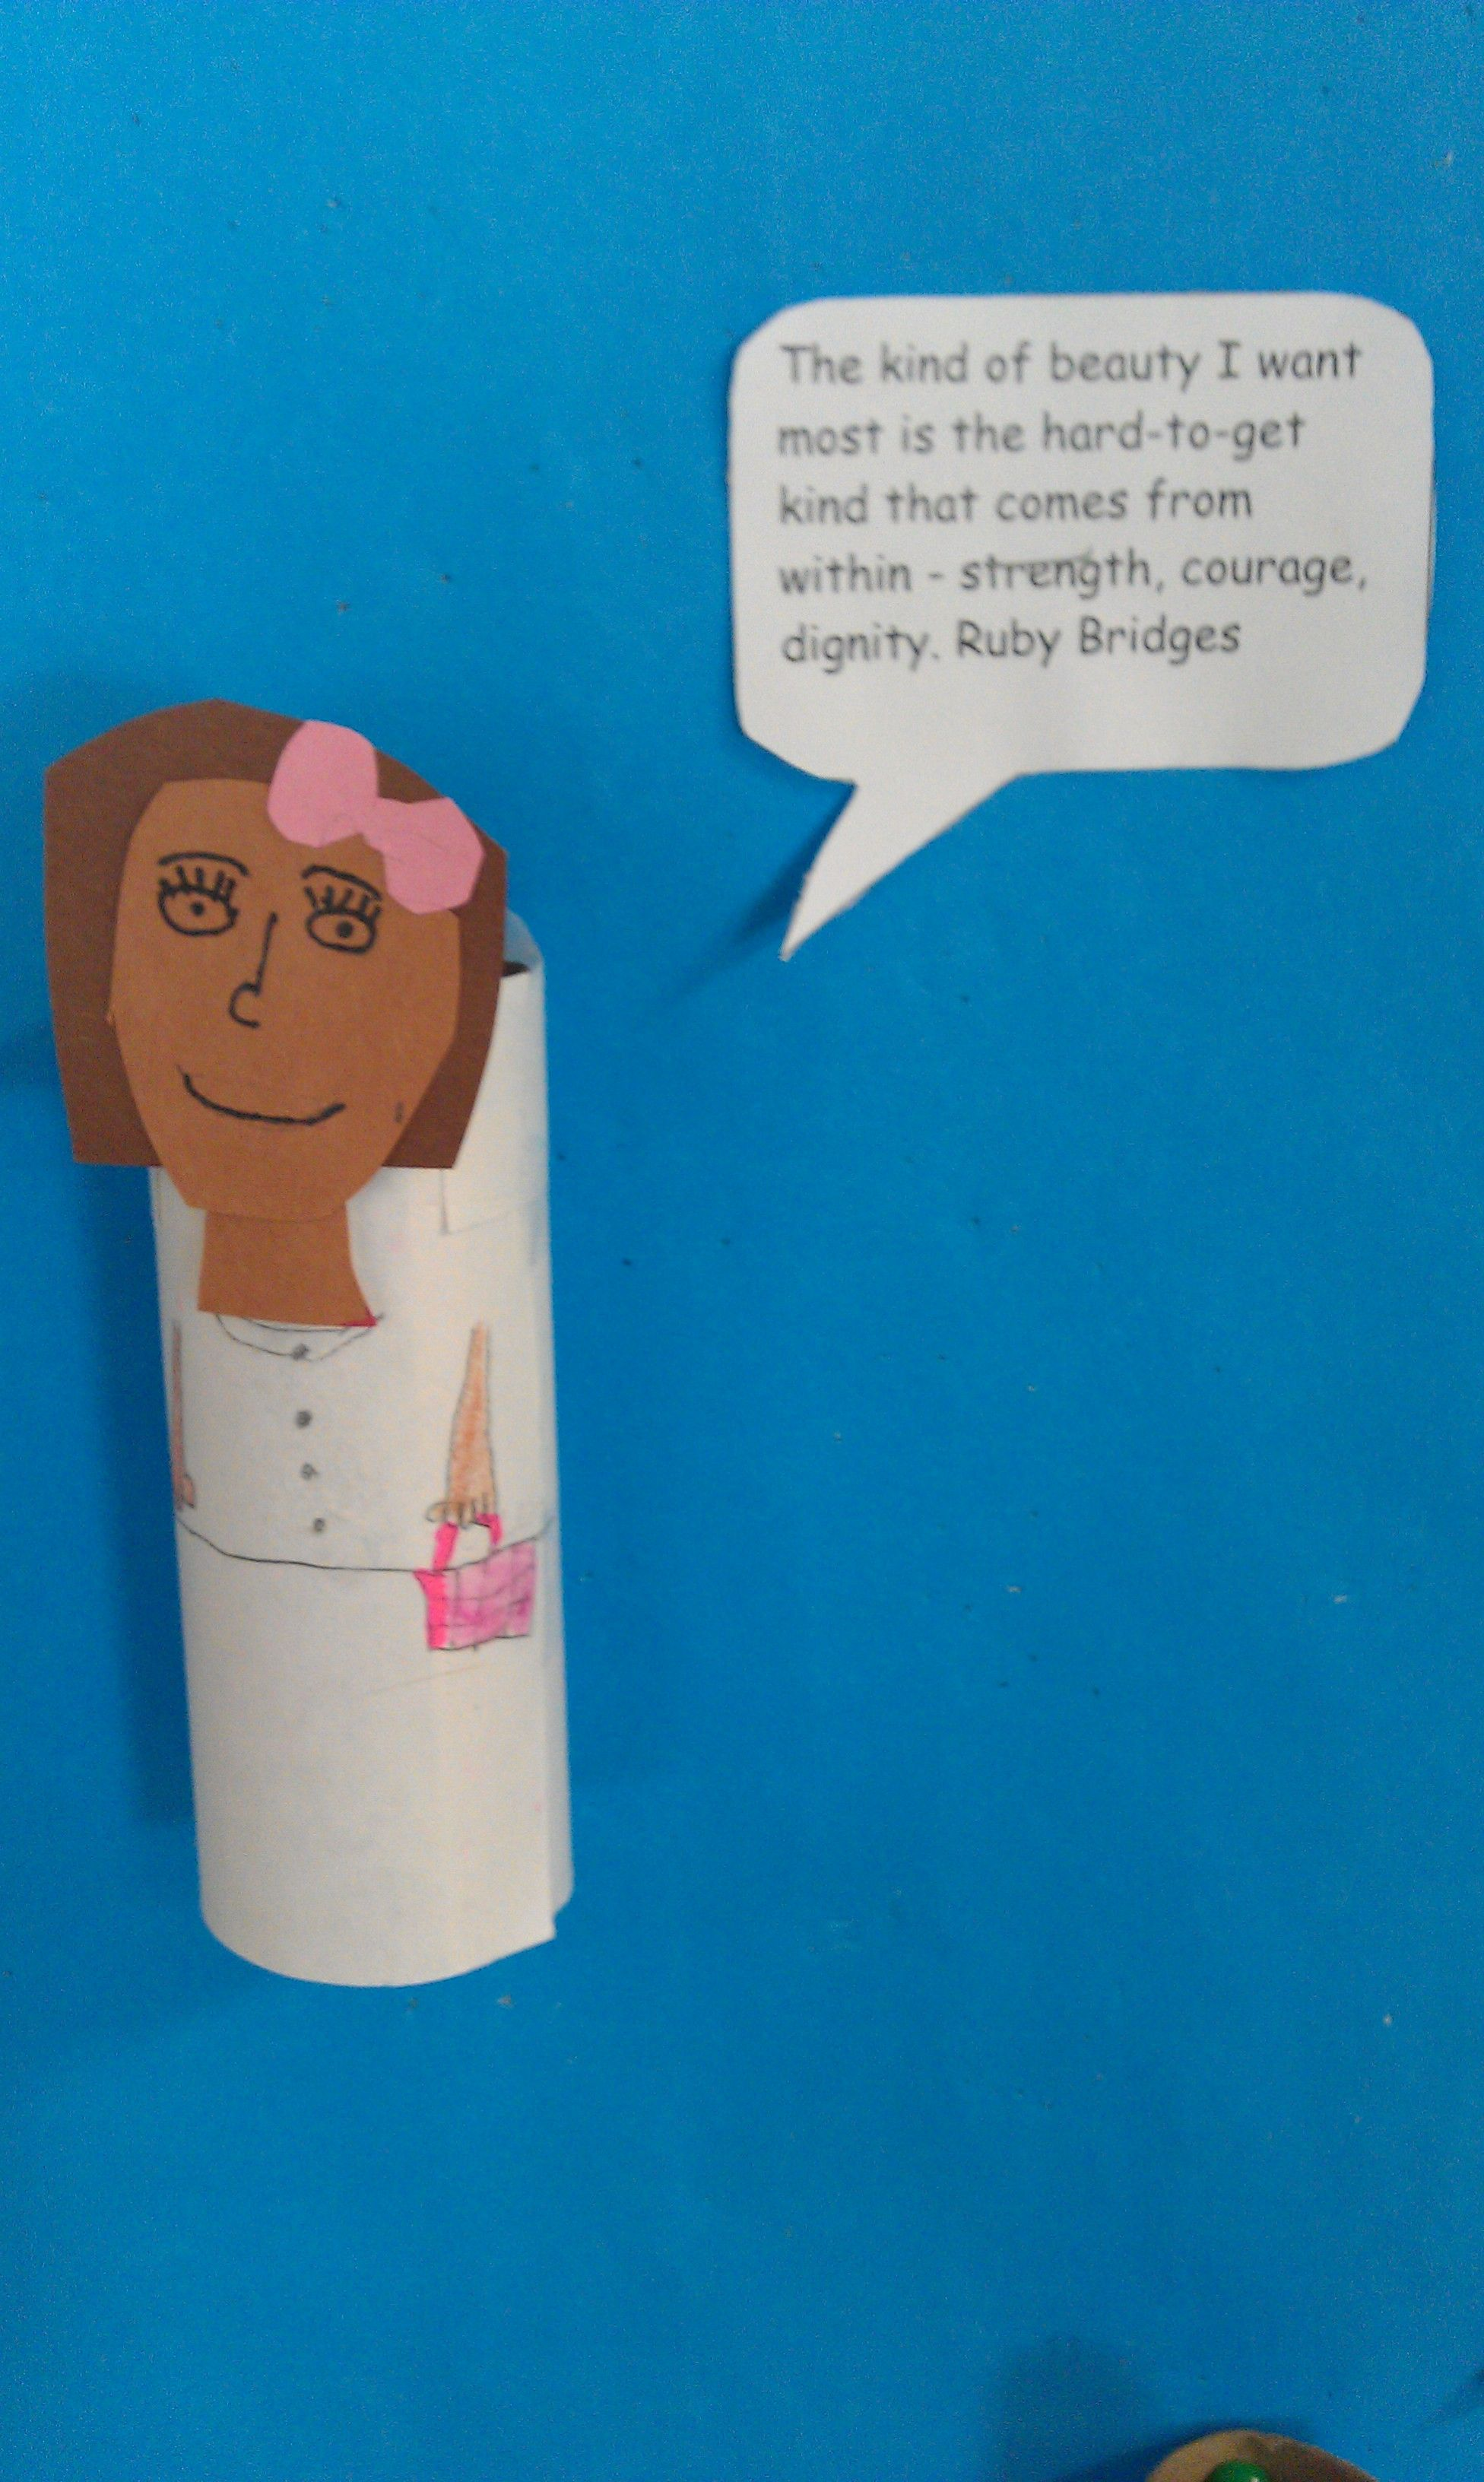 Ruby Bridges Cardboard Tube With Quote For Biography Board